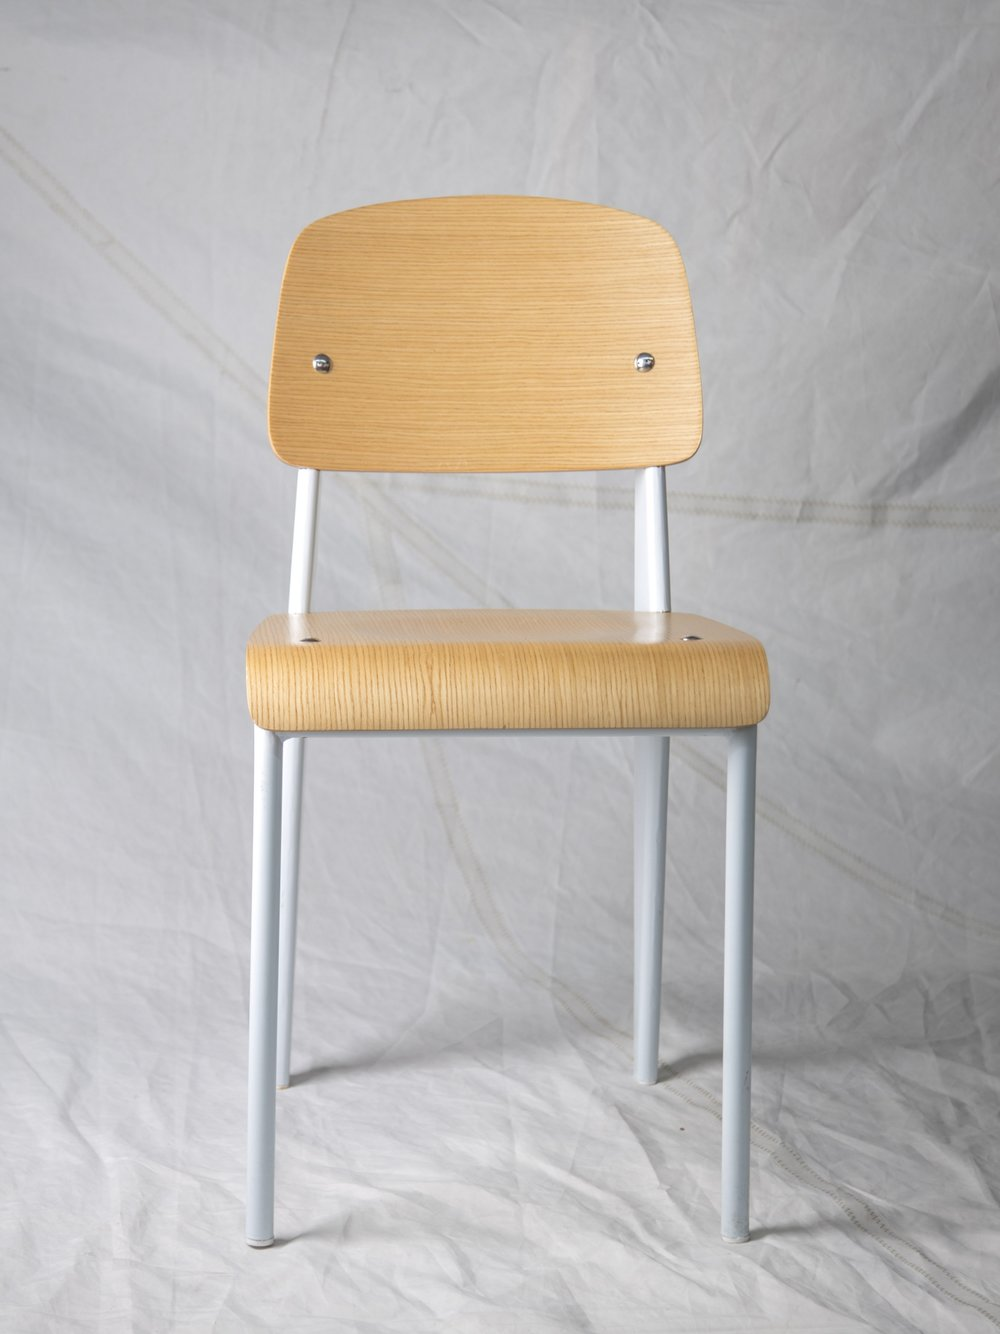 "CH056 - CH058  Prouvé style chair, white/wood 32"" H x 16"" W x 19"" D  $100/week each"